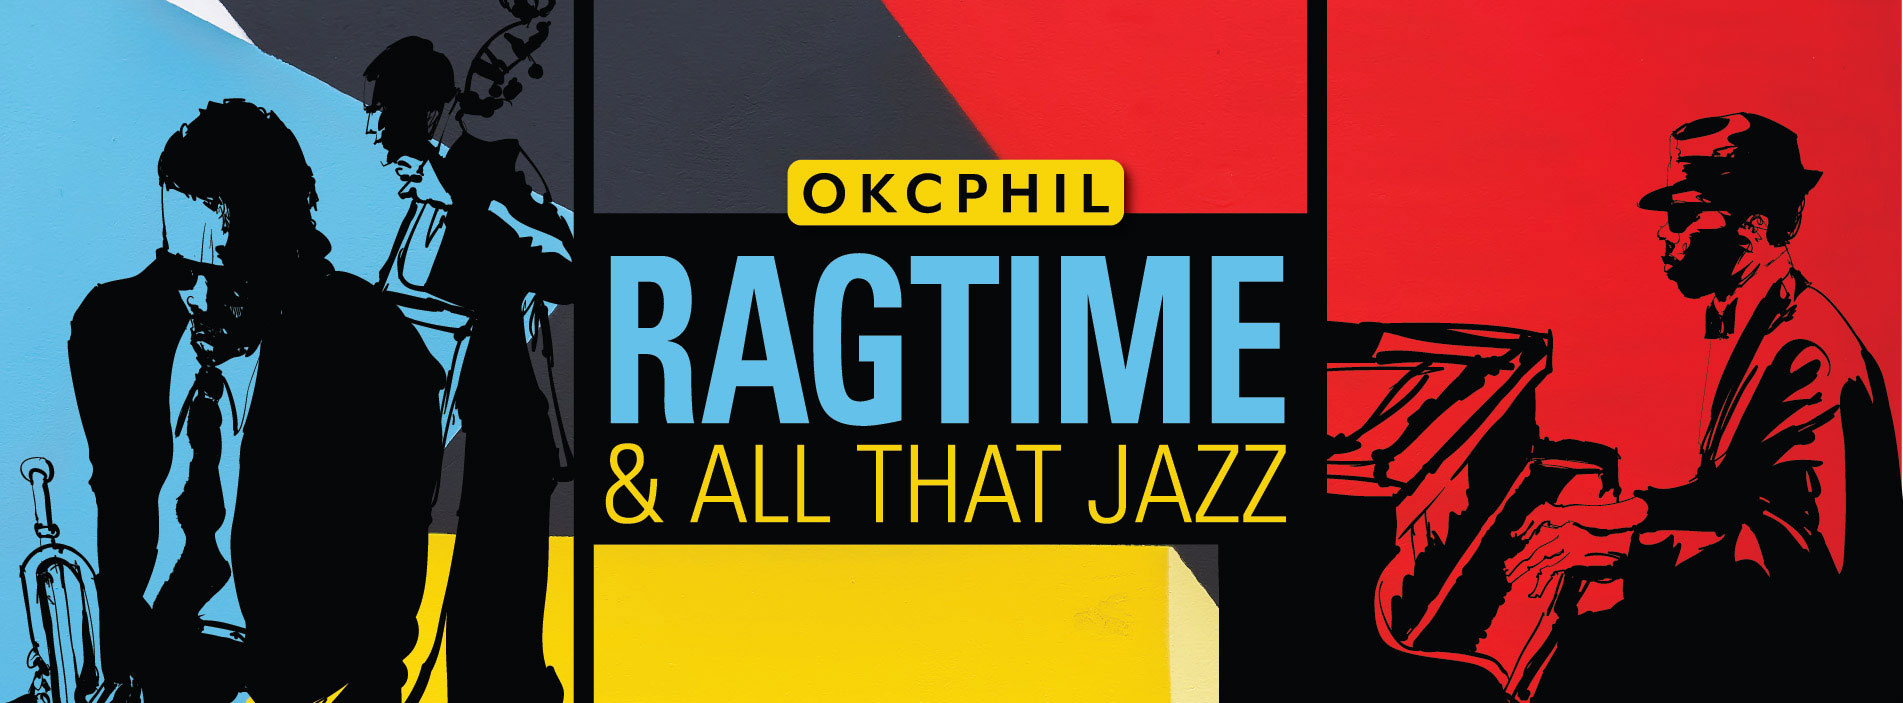 Ragtime and All That Jazz - Postponed: Date TBD